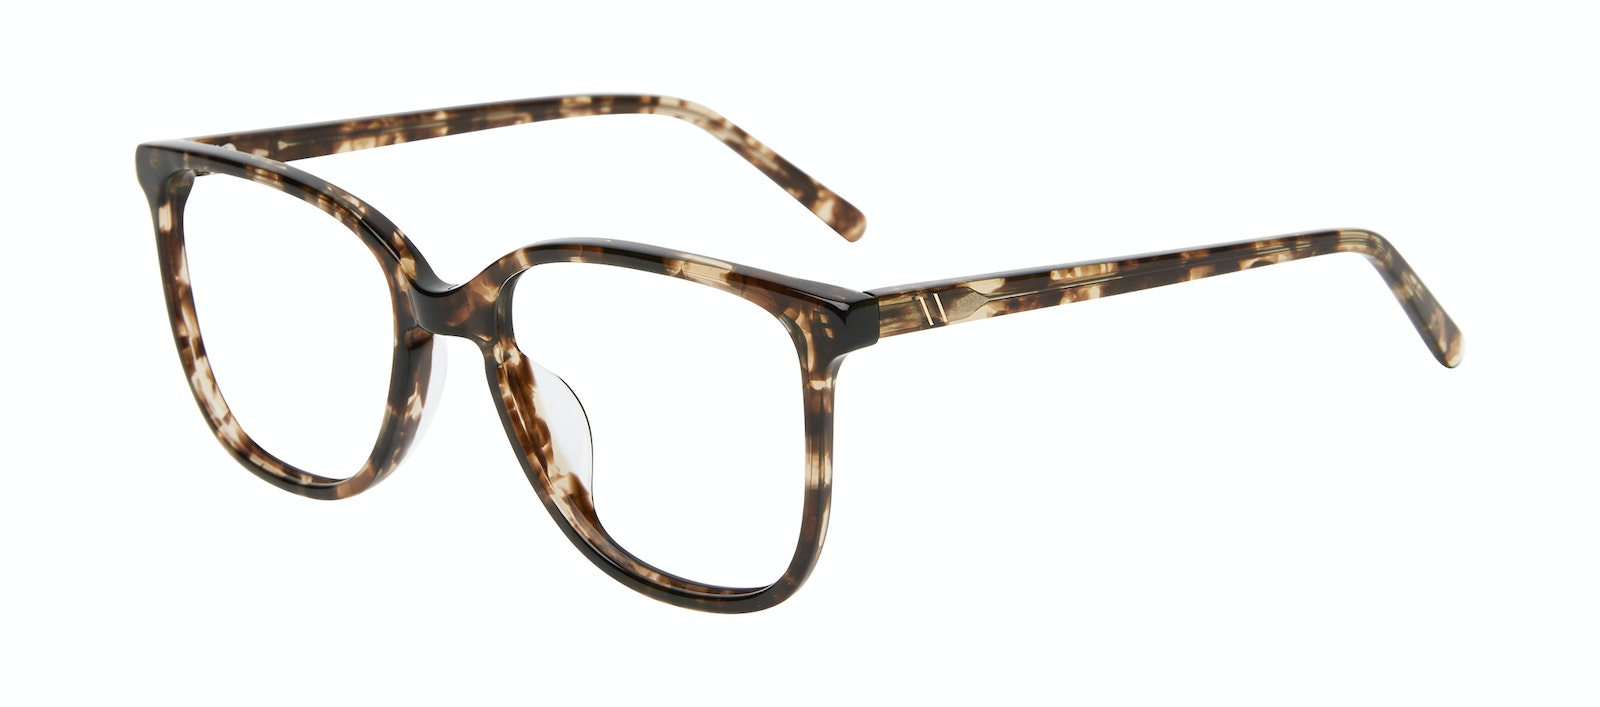 Affordable Fashion Glasses Square Eyeglasses Women Lead Leopard Tilt